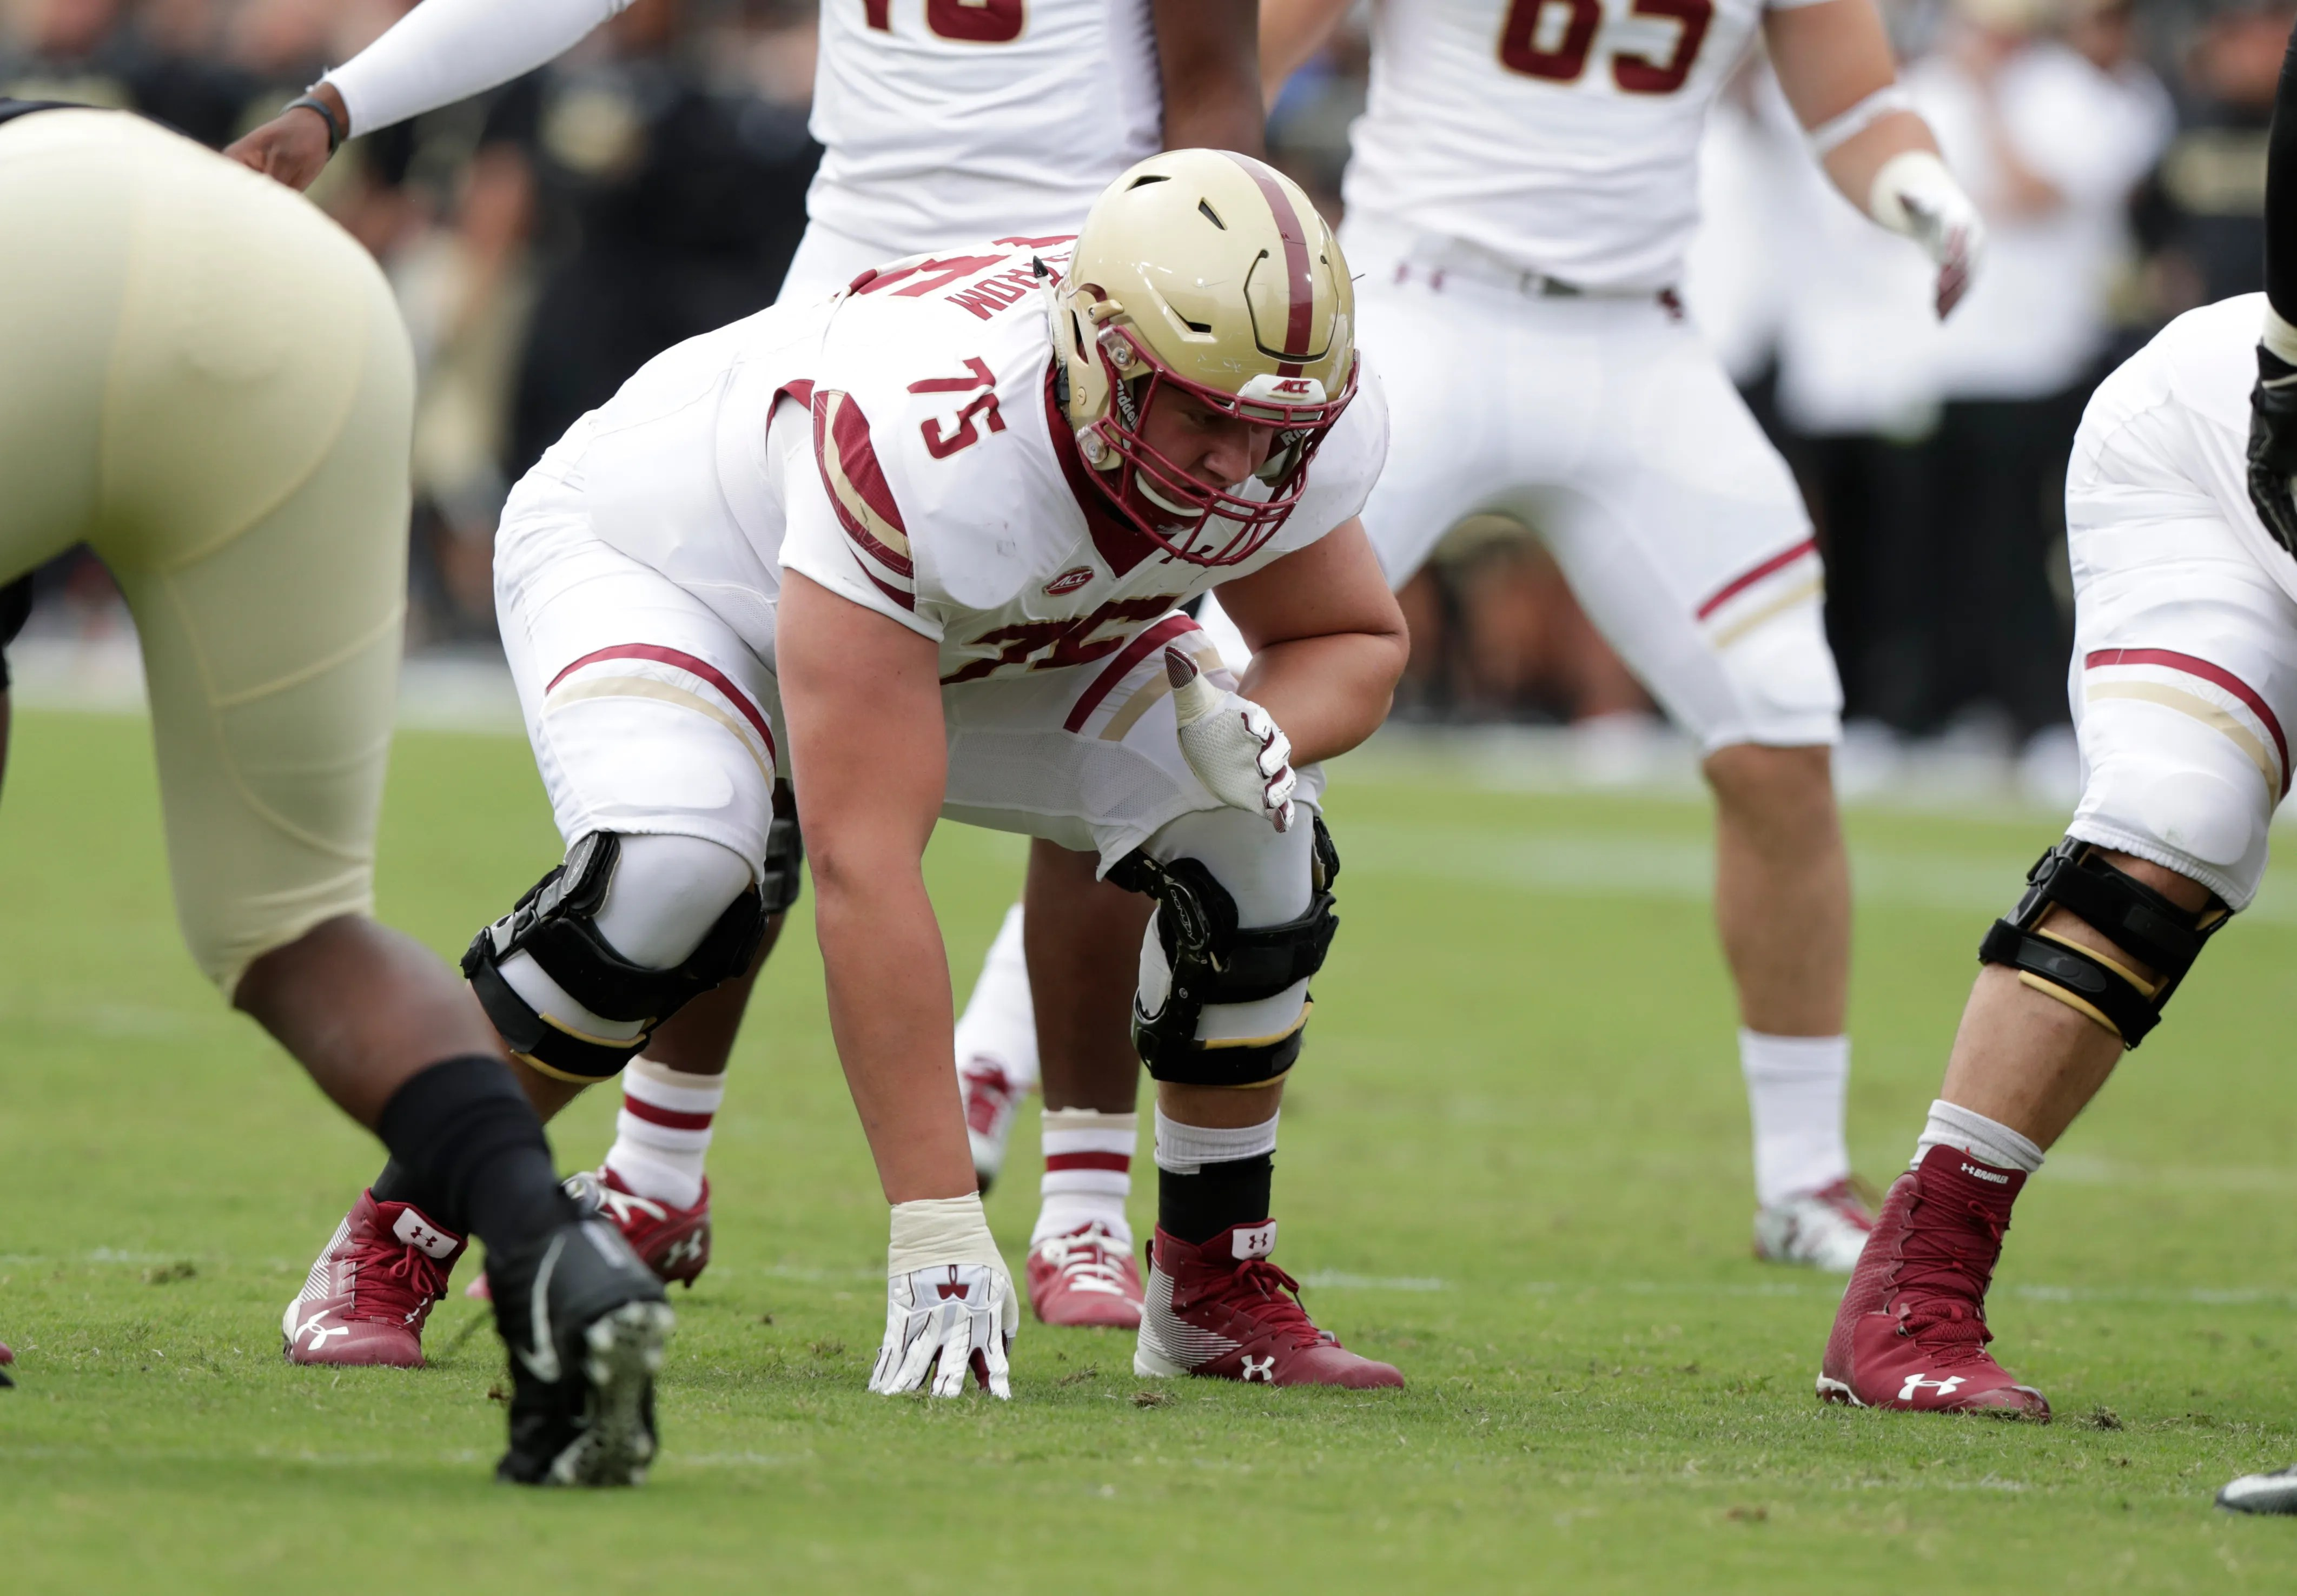 Detroit Lions draft preview Interior offensive lineman fits teams needs